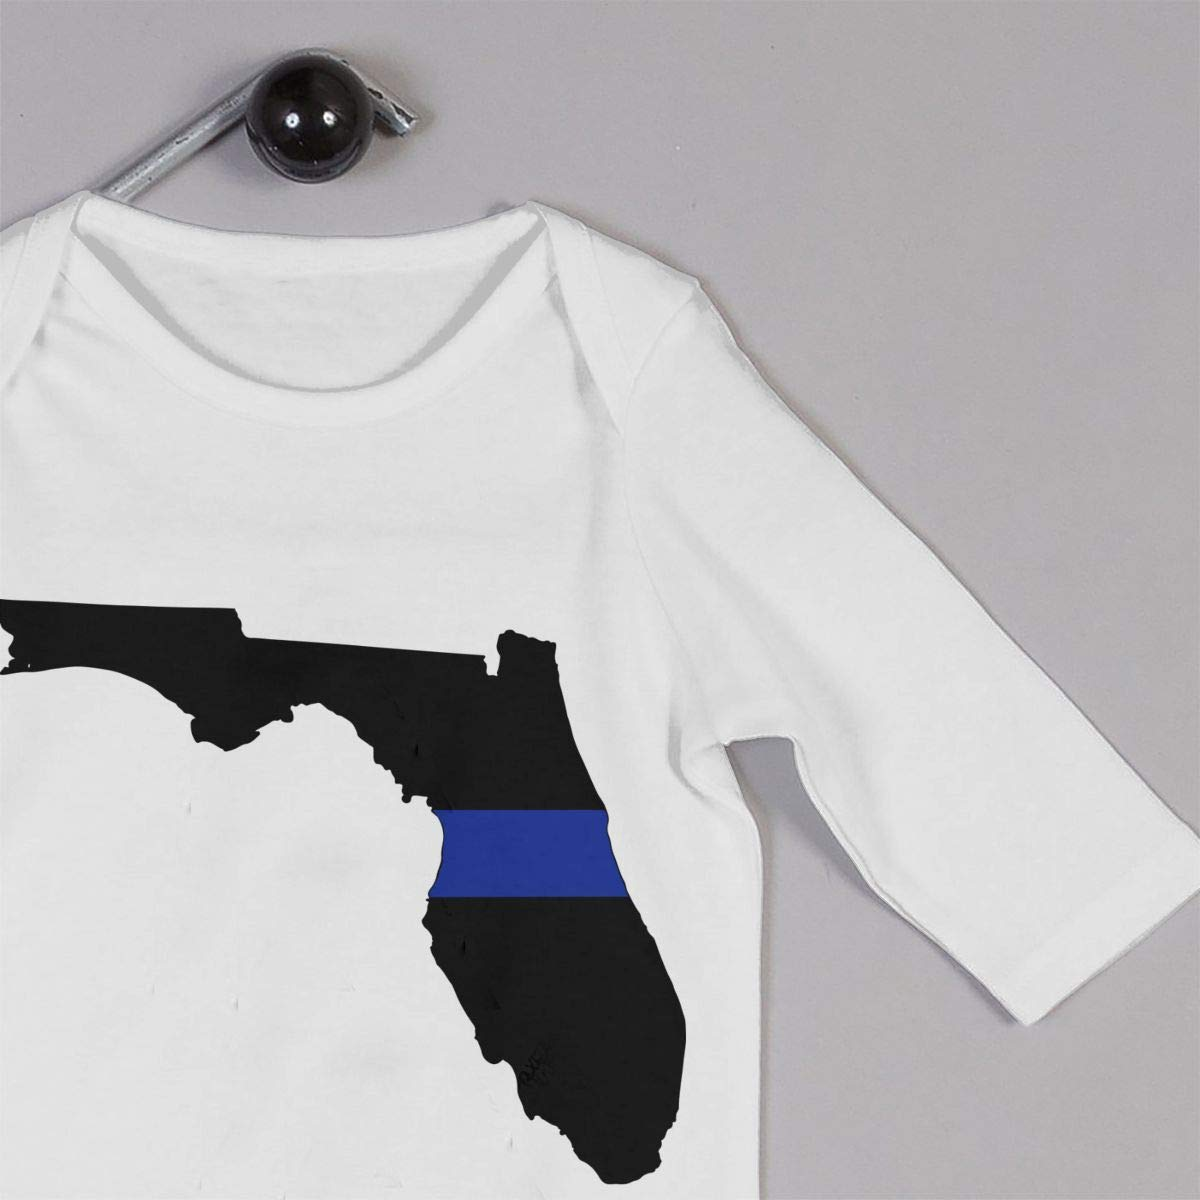 2 Infant Baby Girl Boys Soft /& Breathable Bodysuit Outfits Clothes Thin Blue Line Florida